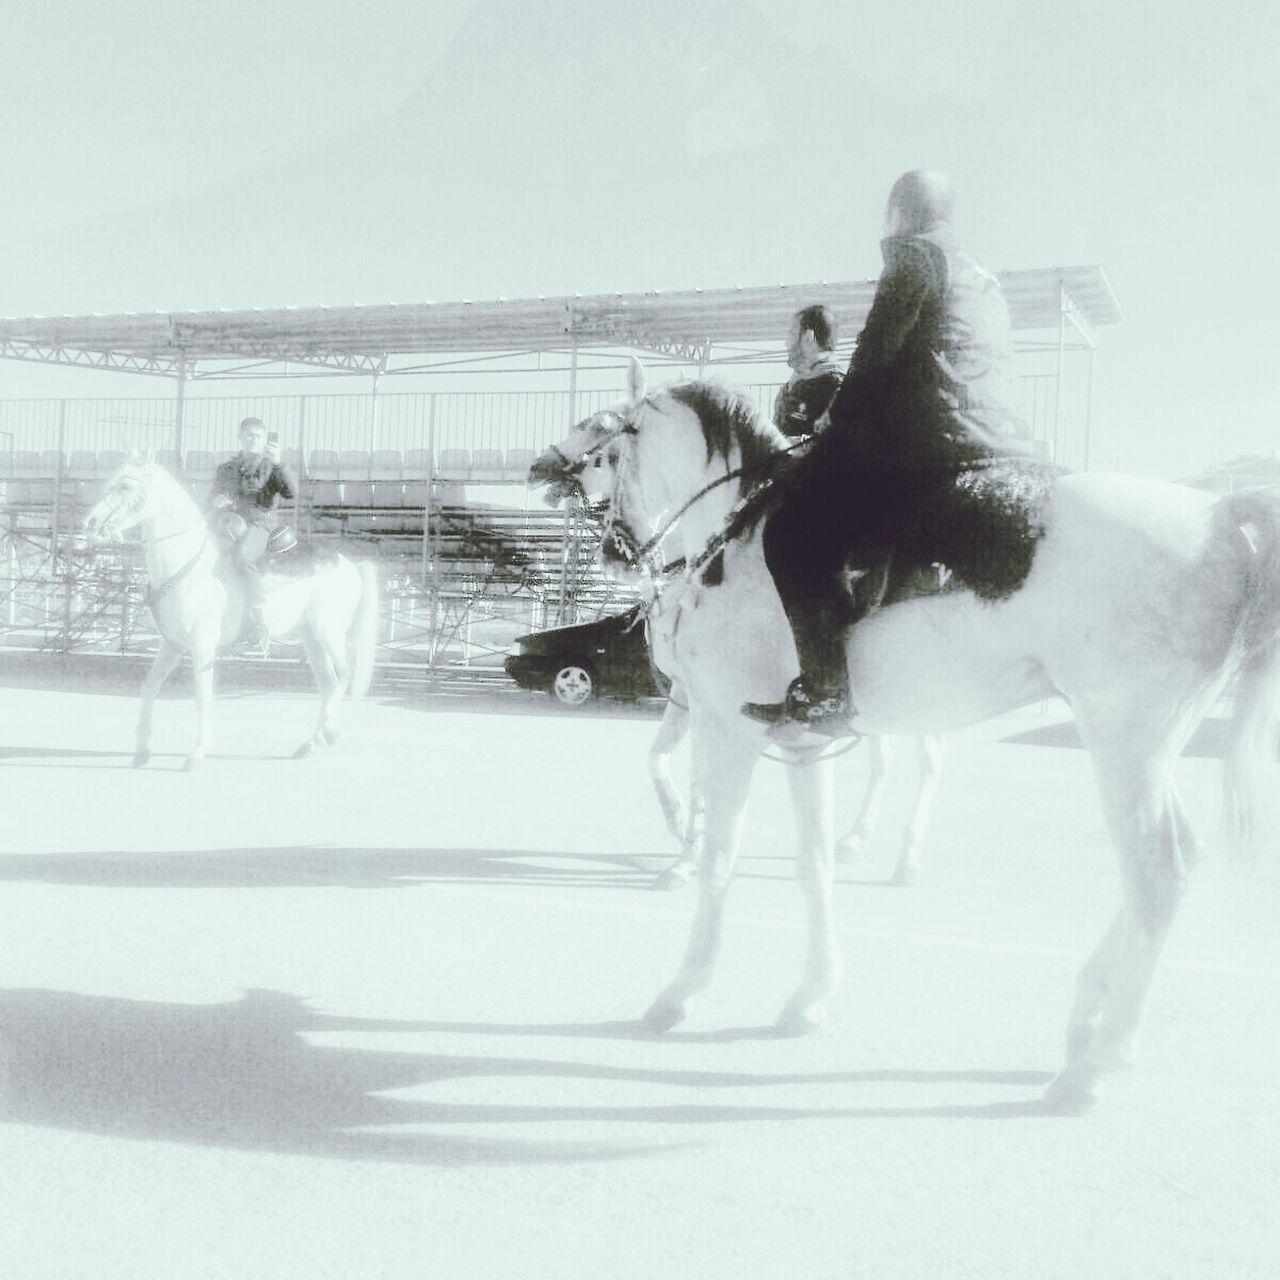 Streets Raiding Traveling Horses Home Sweet Home Freedom Horse Woman Eye LG G3photography Showcase: December B&w Street Photography Kriselfy Photograpy HelloEyeEm EyeEm Best Shots Director Check This Out Cirit Area Turkish Airlines Kitapkokusu Lifestyle